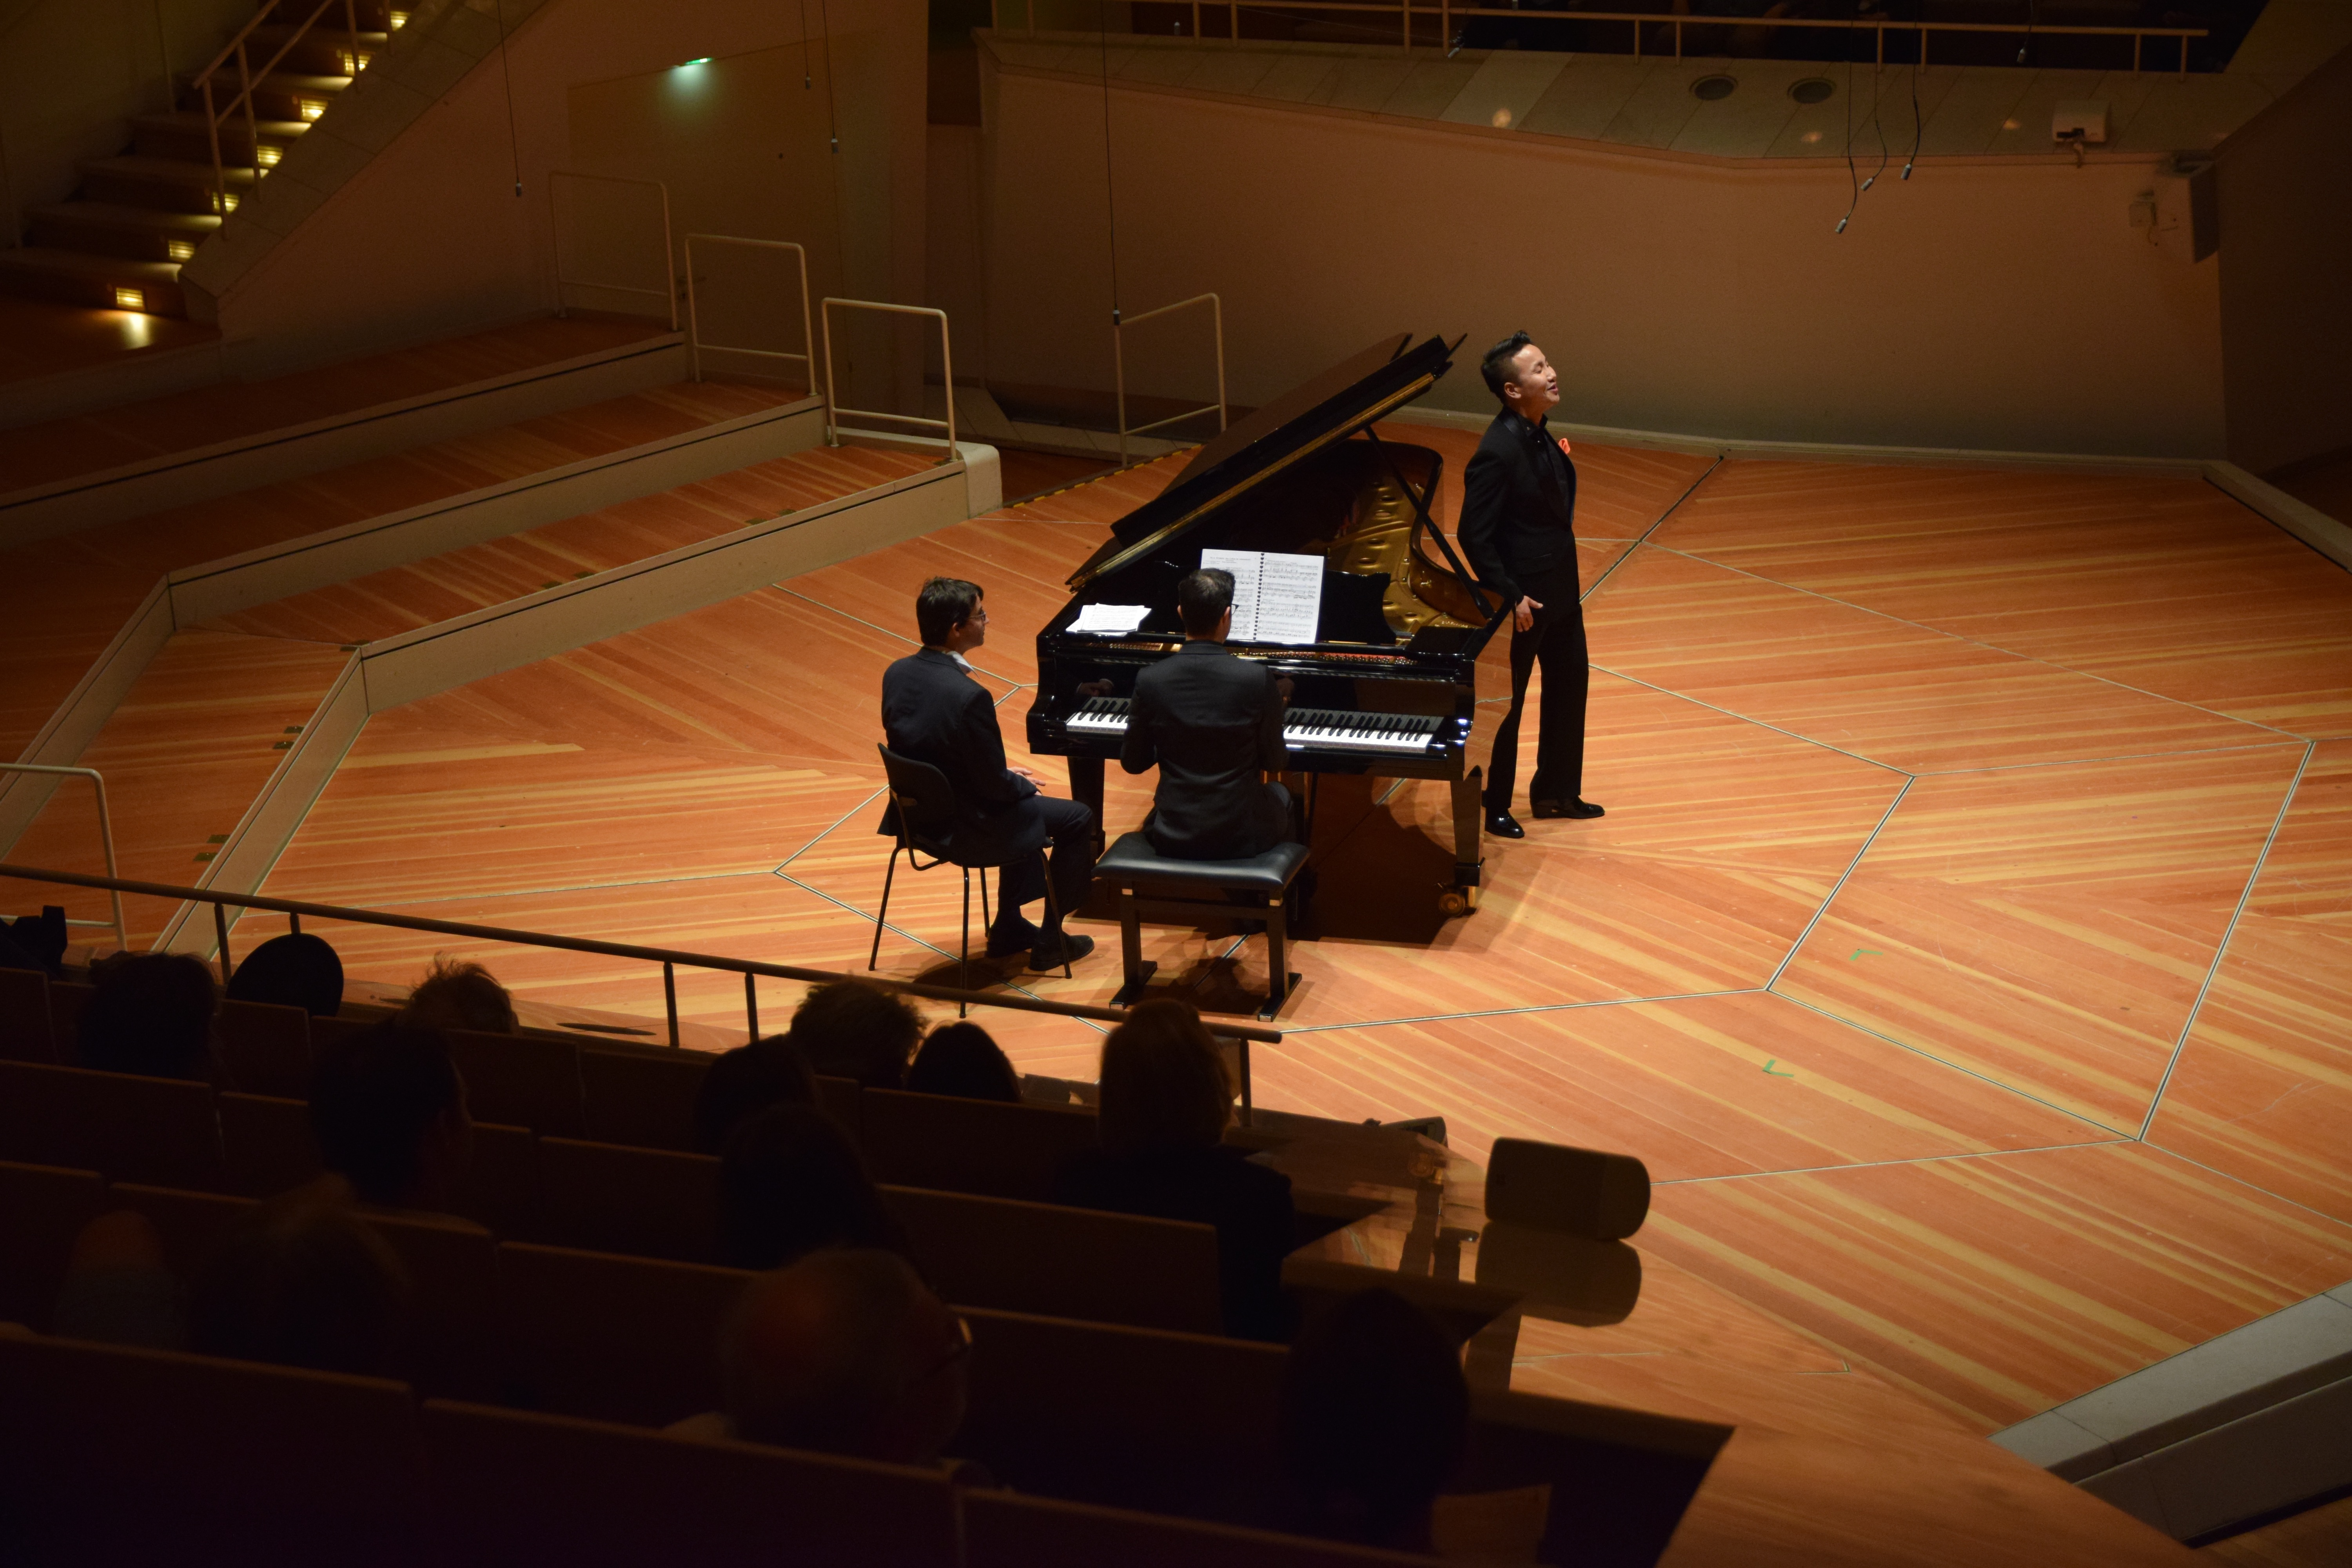 berliner music competition 22